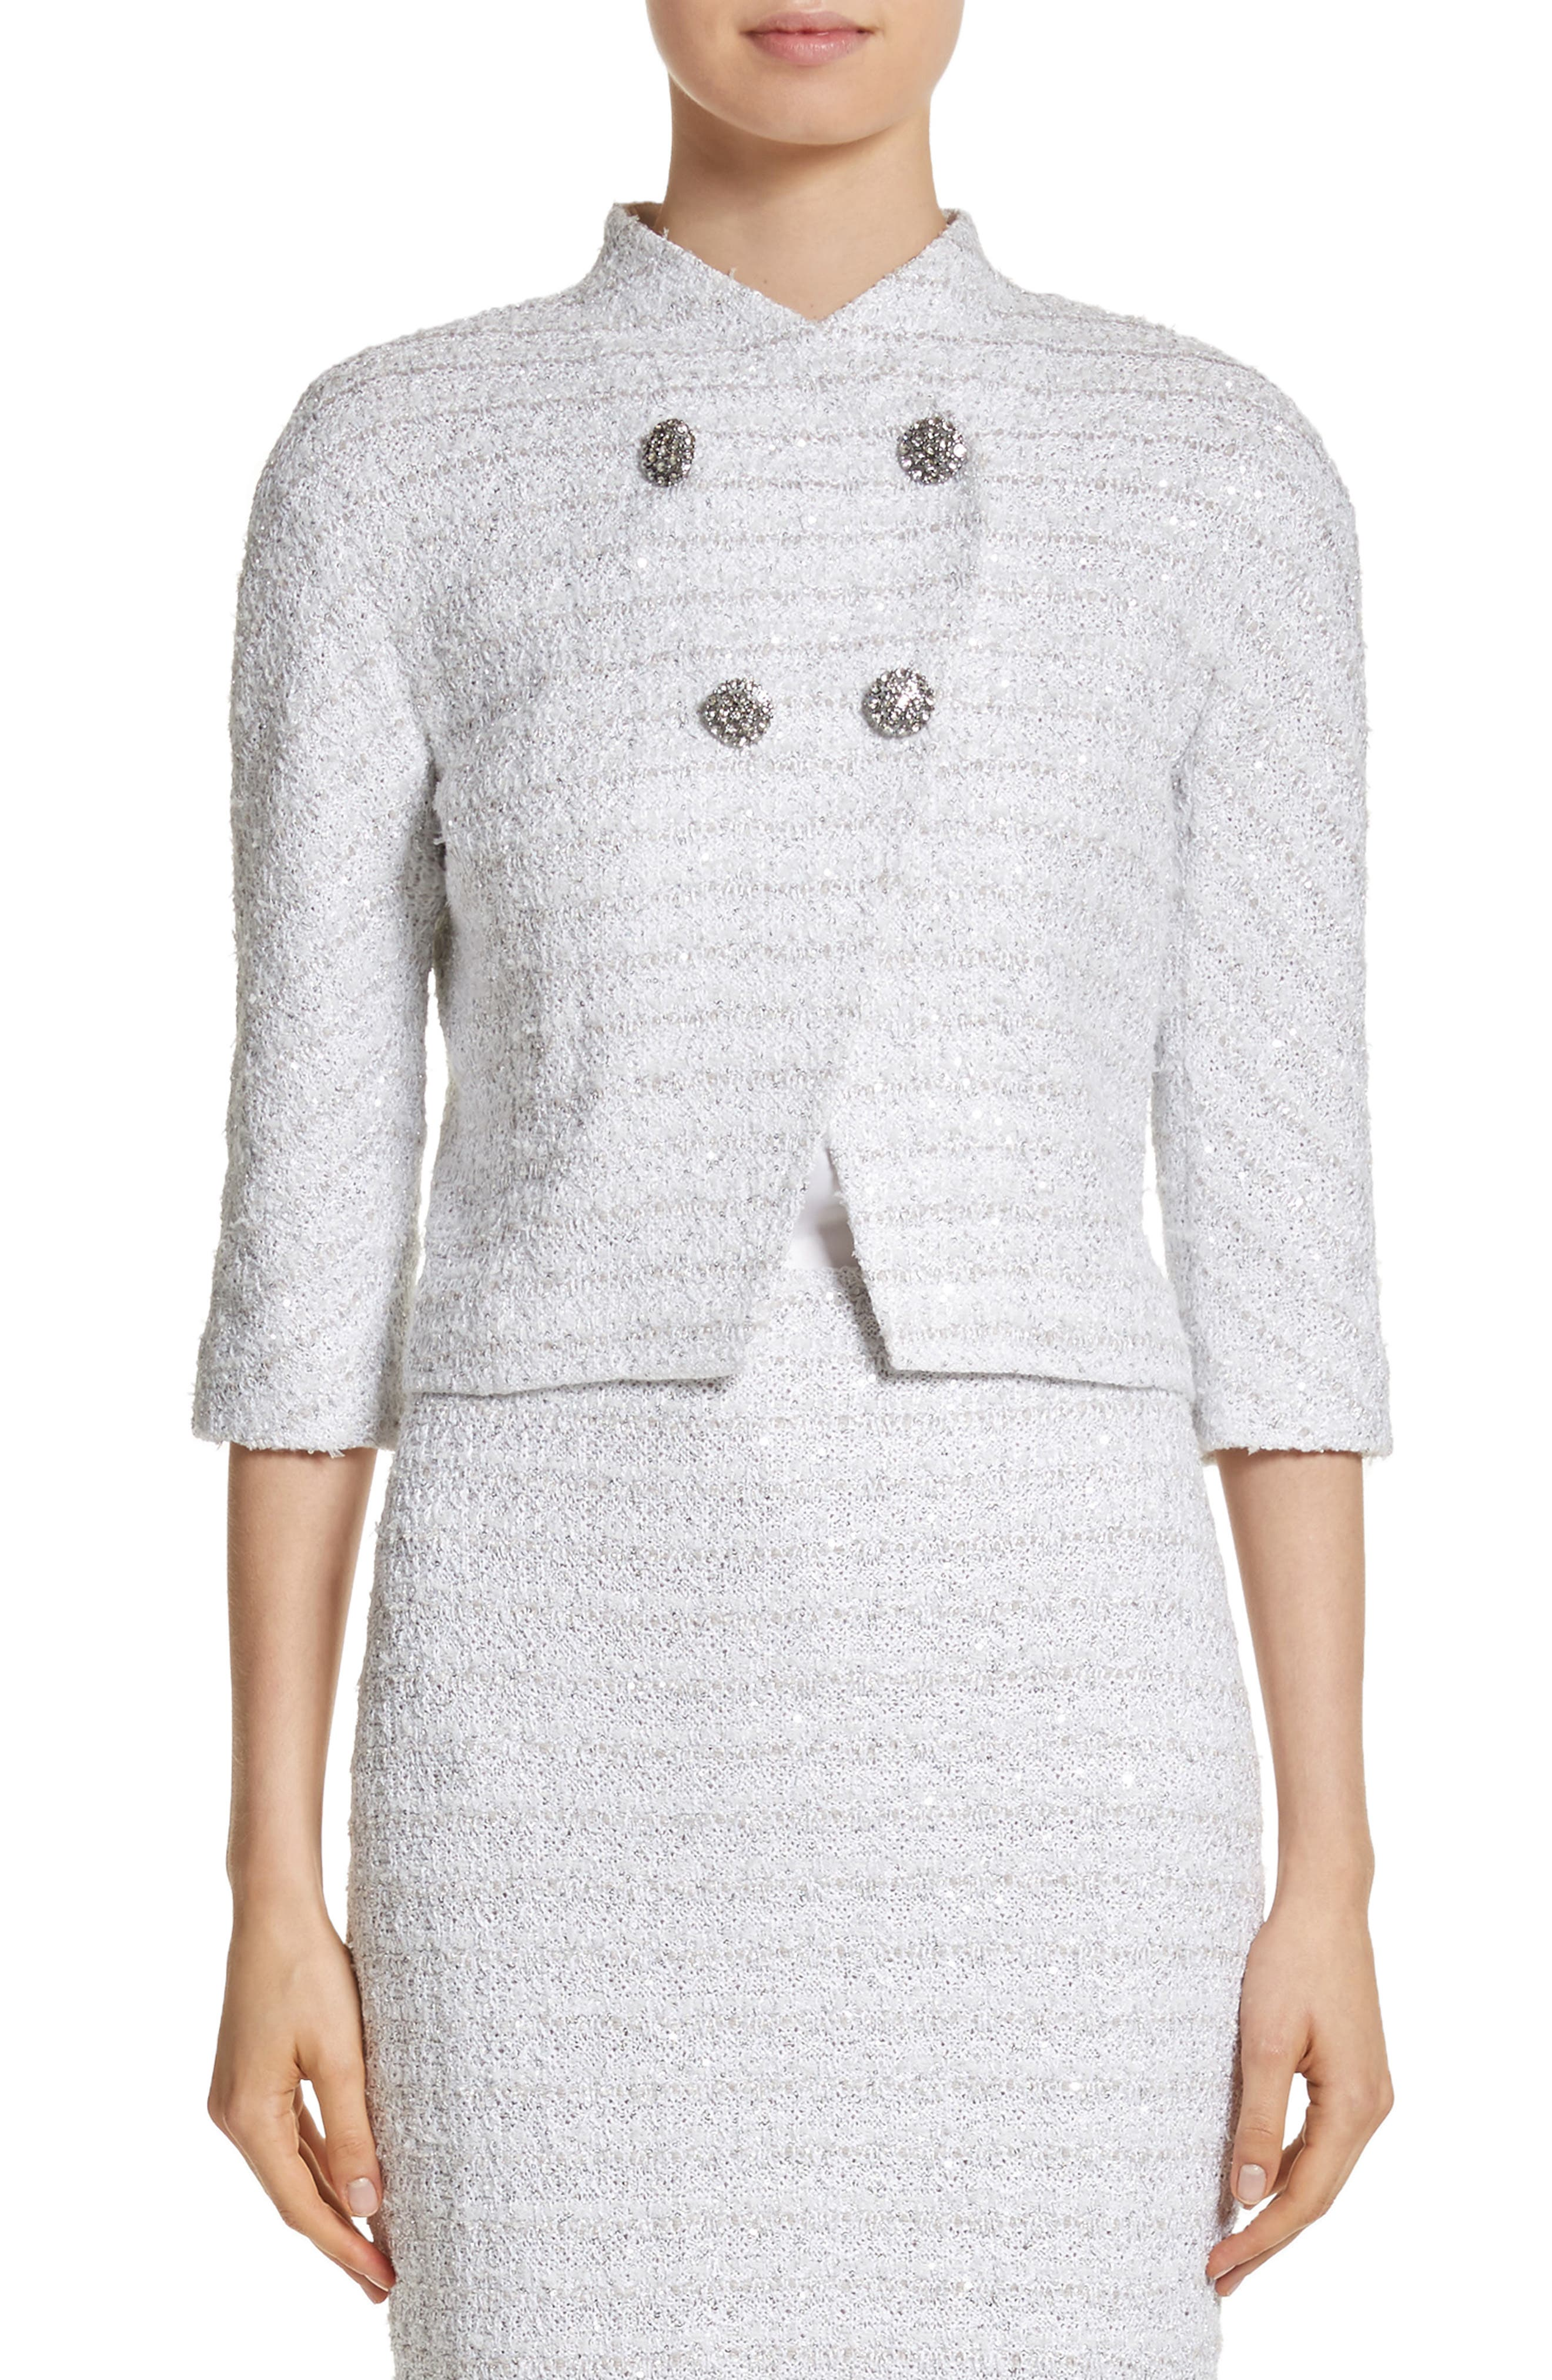 Frosted Metallic Tweed Jacket,                             Main thumbnail 1, color,                             Bianco Multi